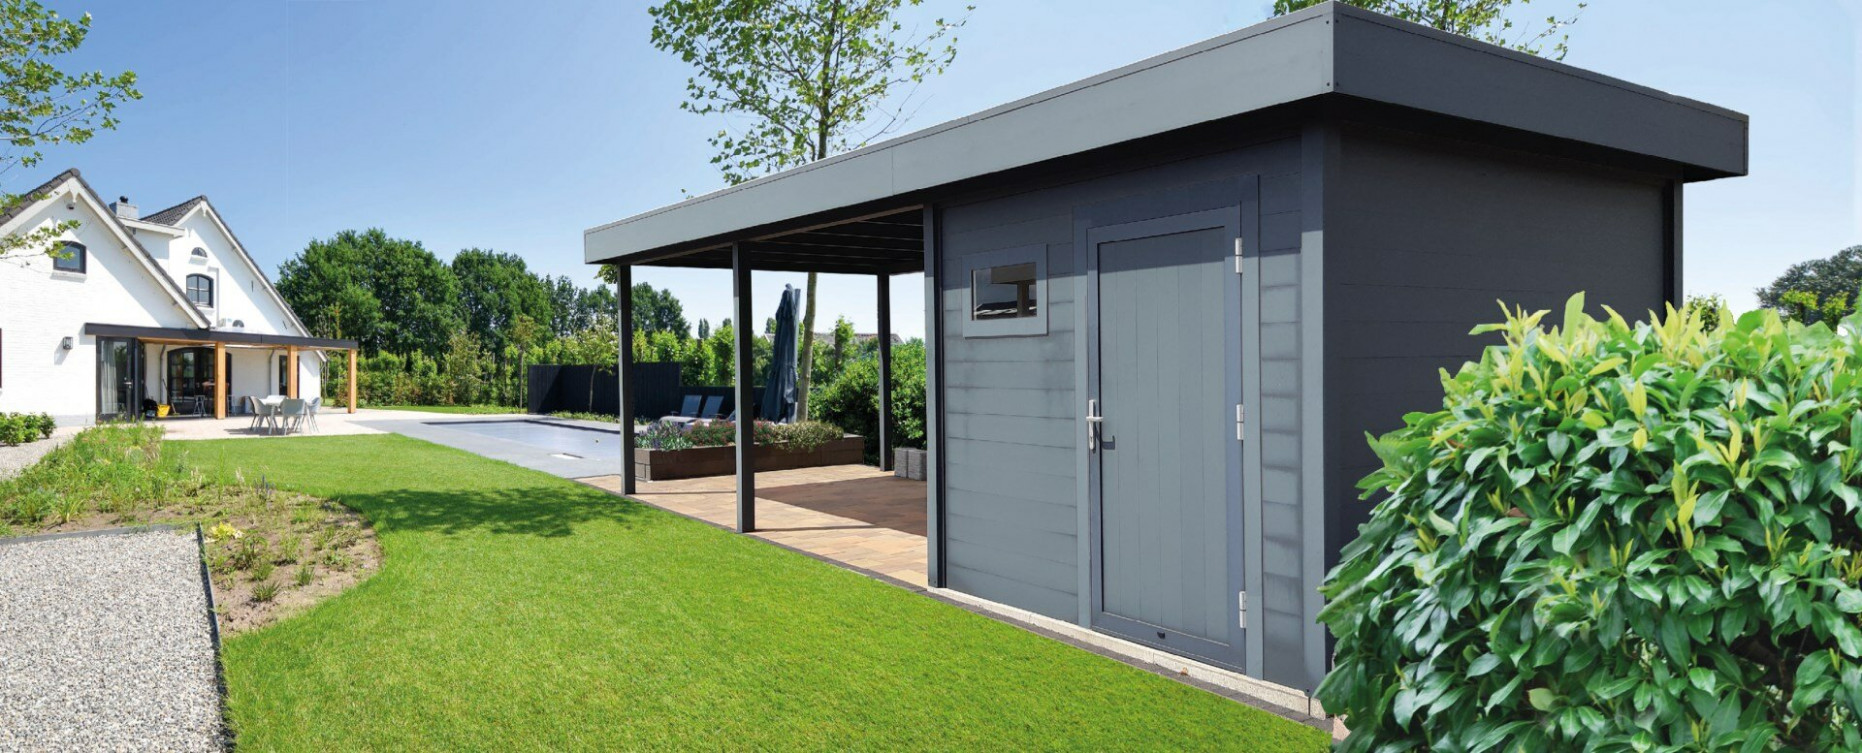 Carport With Flat Roof | Gardendreams Carports With Flat Roofs